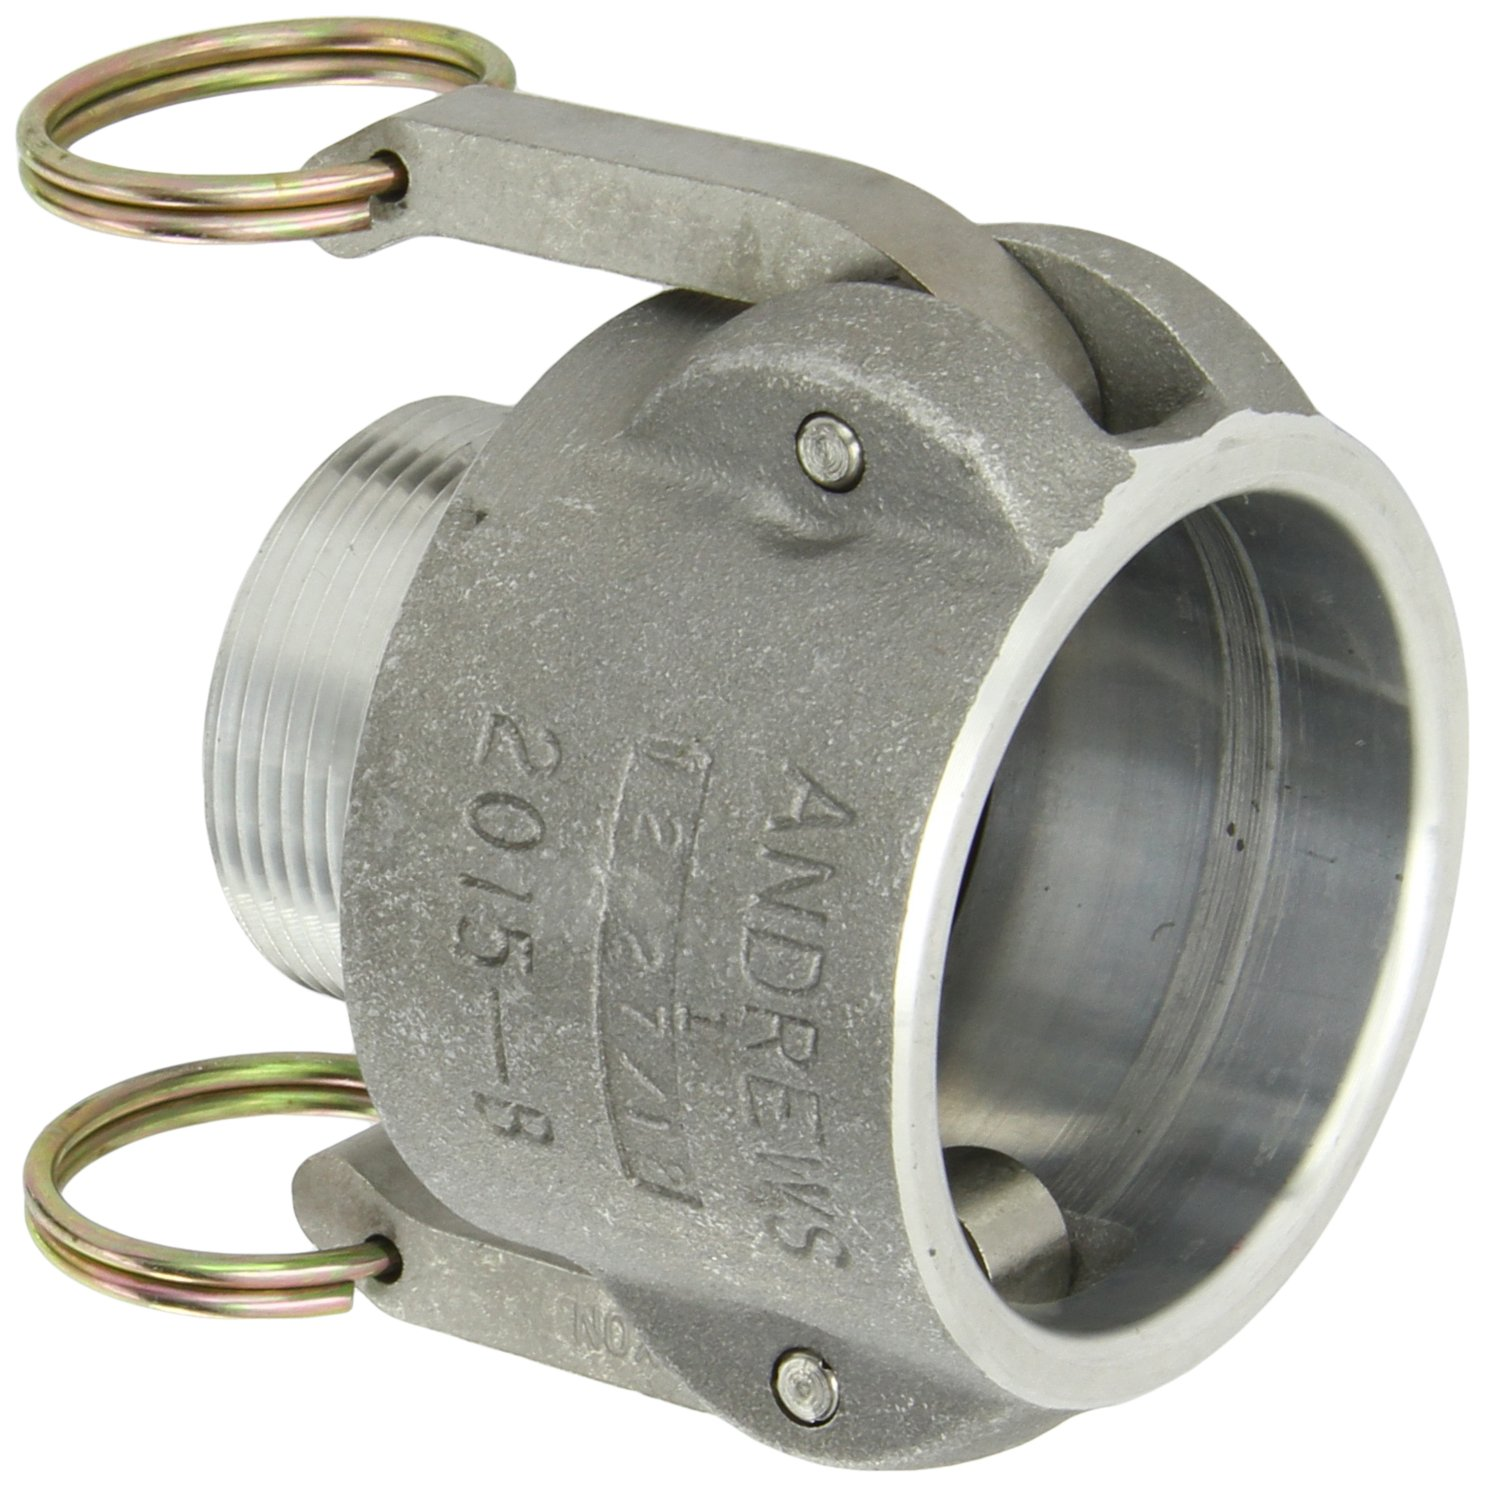 Campbell Fittings B-AL-600 6 Type B Aluminum Cam and Groove Hose Fitting